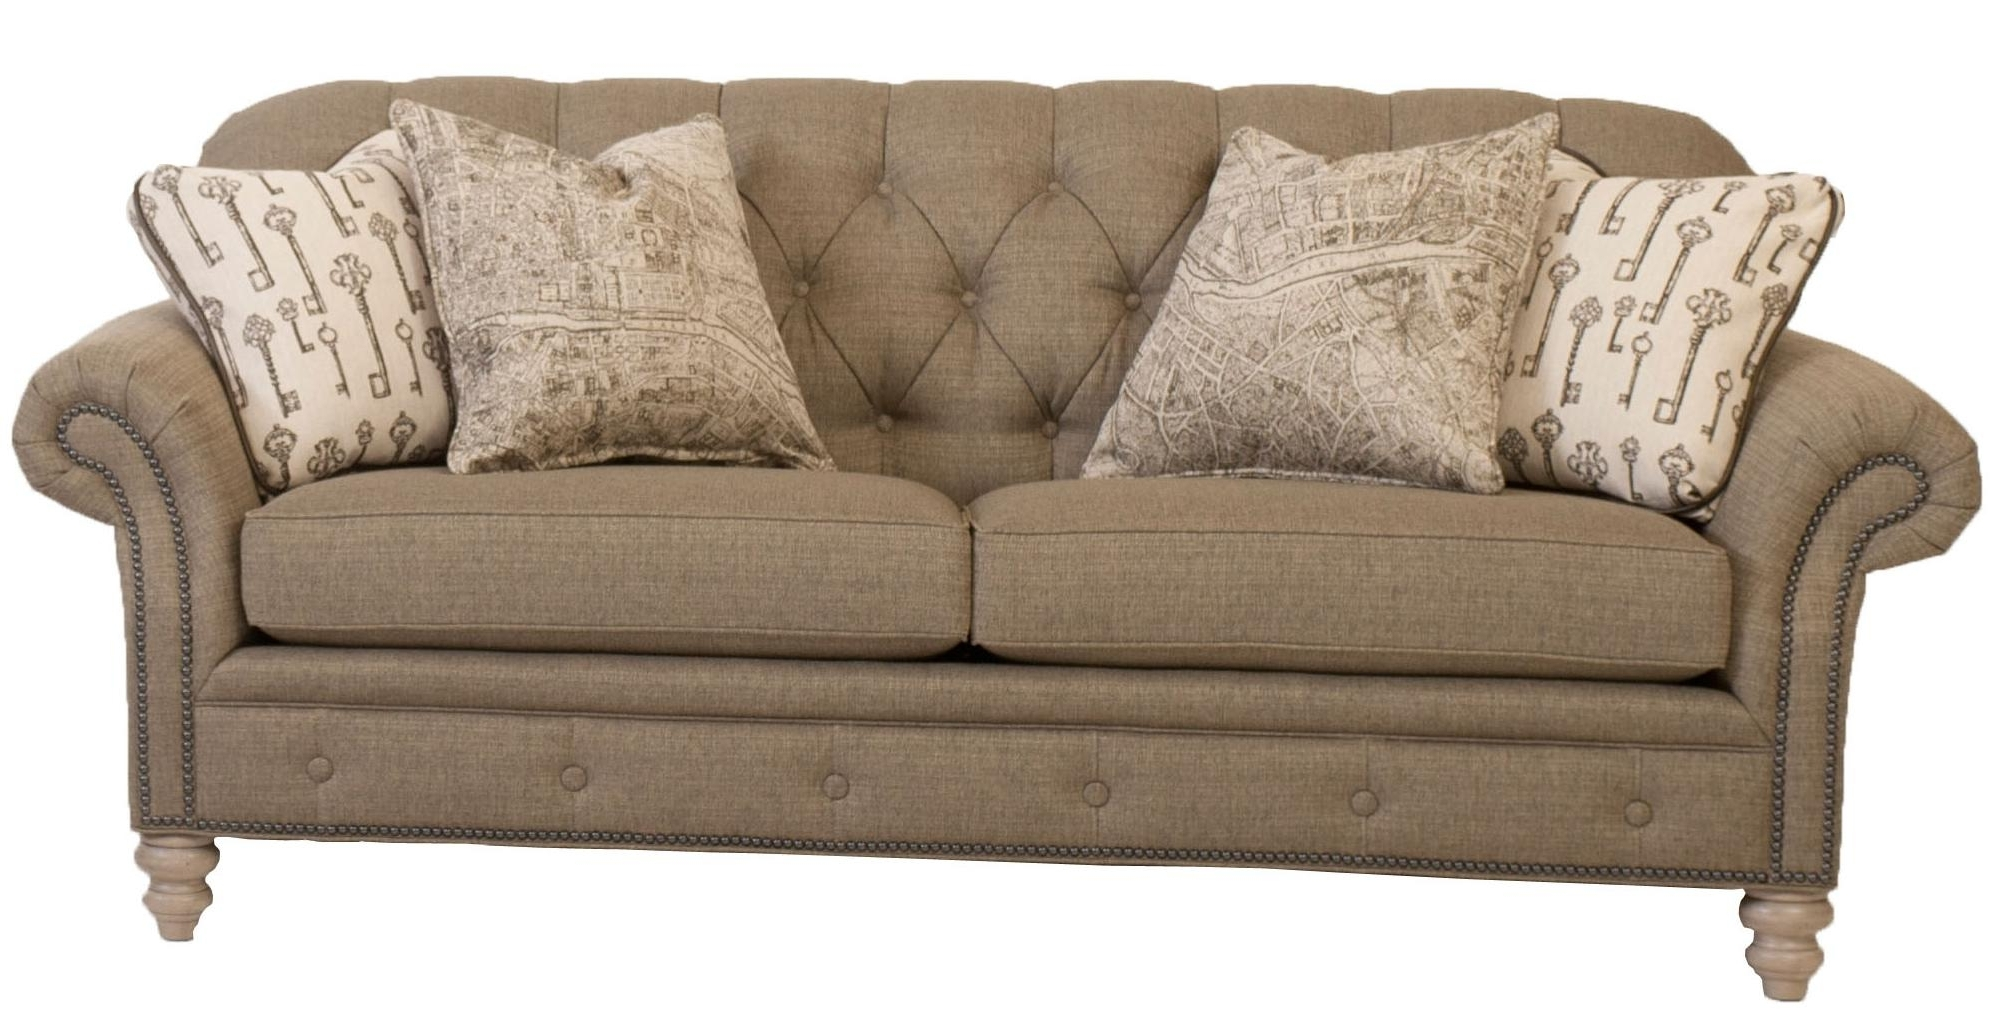 Fresh Sectional Sofa With Nailhead Trim 64 For Your Sofas And Regarding Current Sectional Sofas With Nailheads (View 10 of 15)